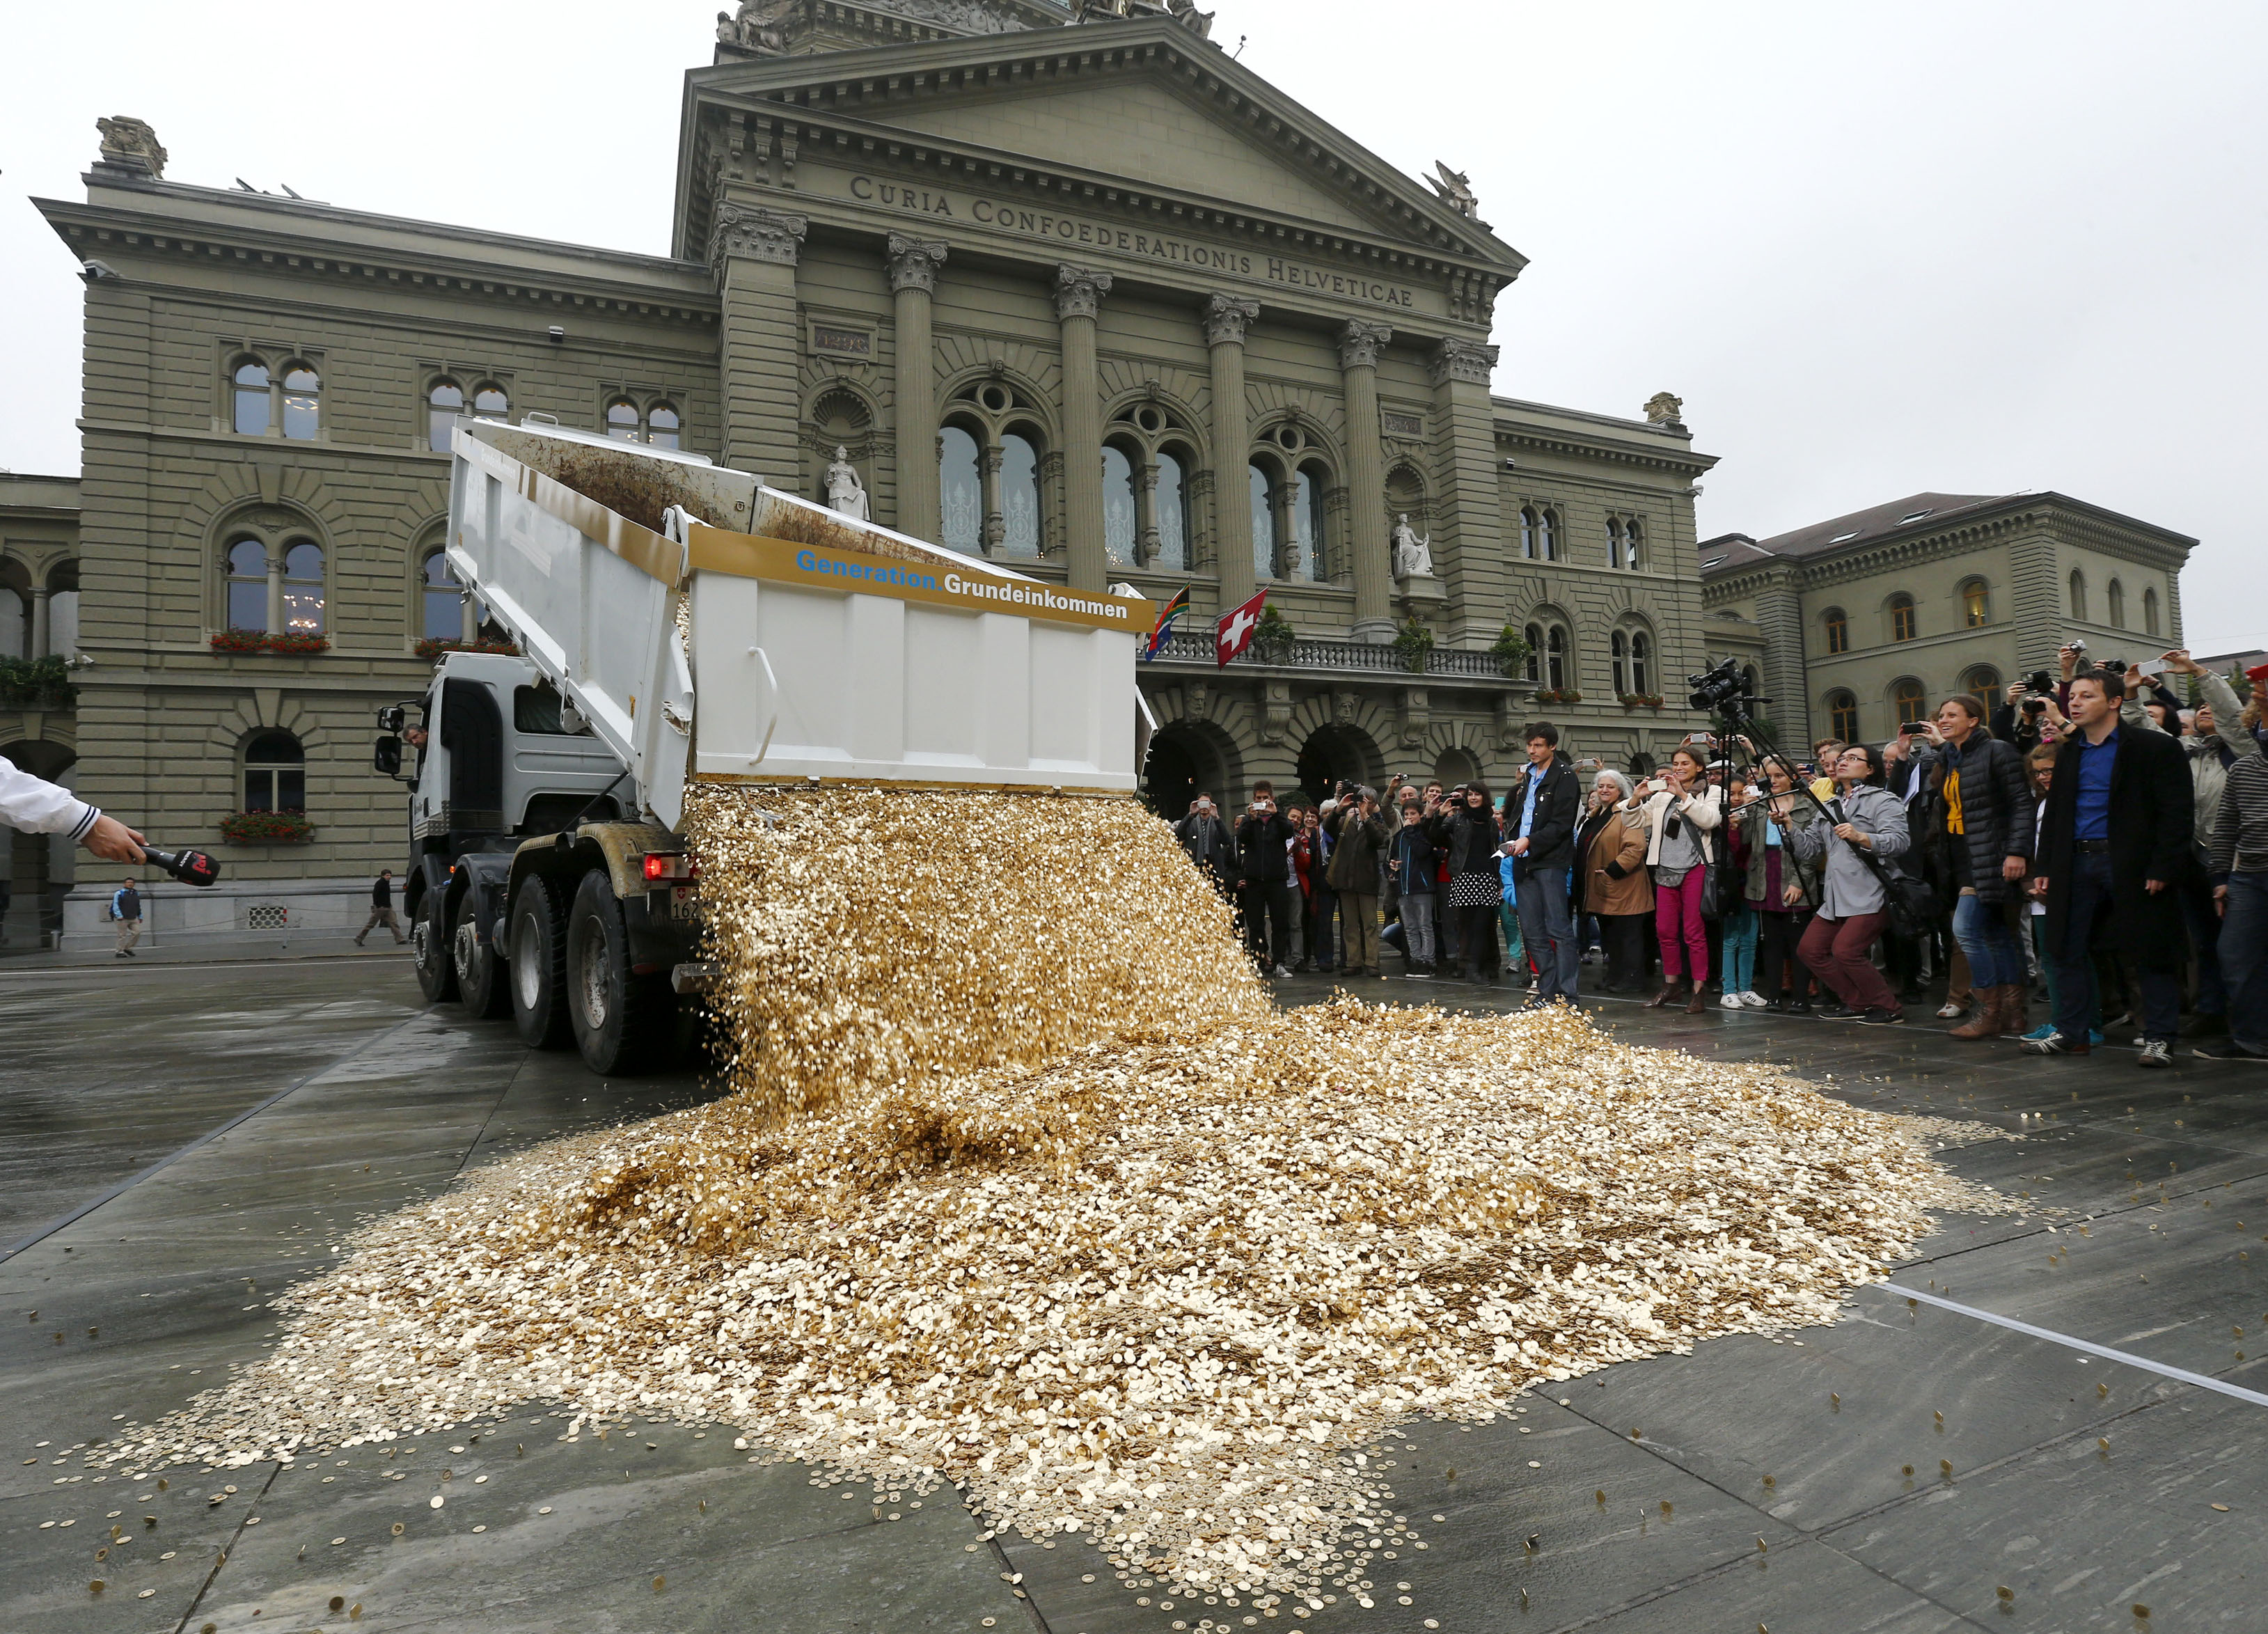 """A truck dumps five cent coins in the centre of the Federal Square during a an event organised by the Committee for the initiative """"CHF 2,500 monthly for everyone"""" (Grundeinkommen) in Bern October 4, 2013. The Committee delivered 126,000 signatures to the Chancellery on Friday to propose a change in the constitution to implement their initiative. The initiative aims to have a minimum monthly disposal household income of CHF 2,500 (US$ 2,700) given by the government to every citizen living in Switzerland. REUTERS/Denis Balibouse (SWITZERLAND - Tags: POLITICS CIVIL UNREST) - RTR3FL4O"""